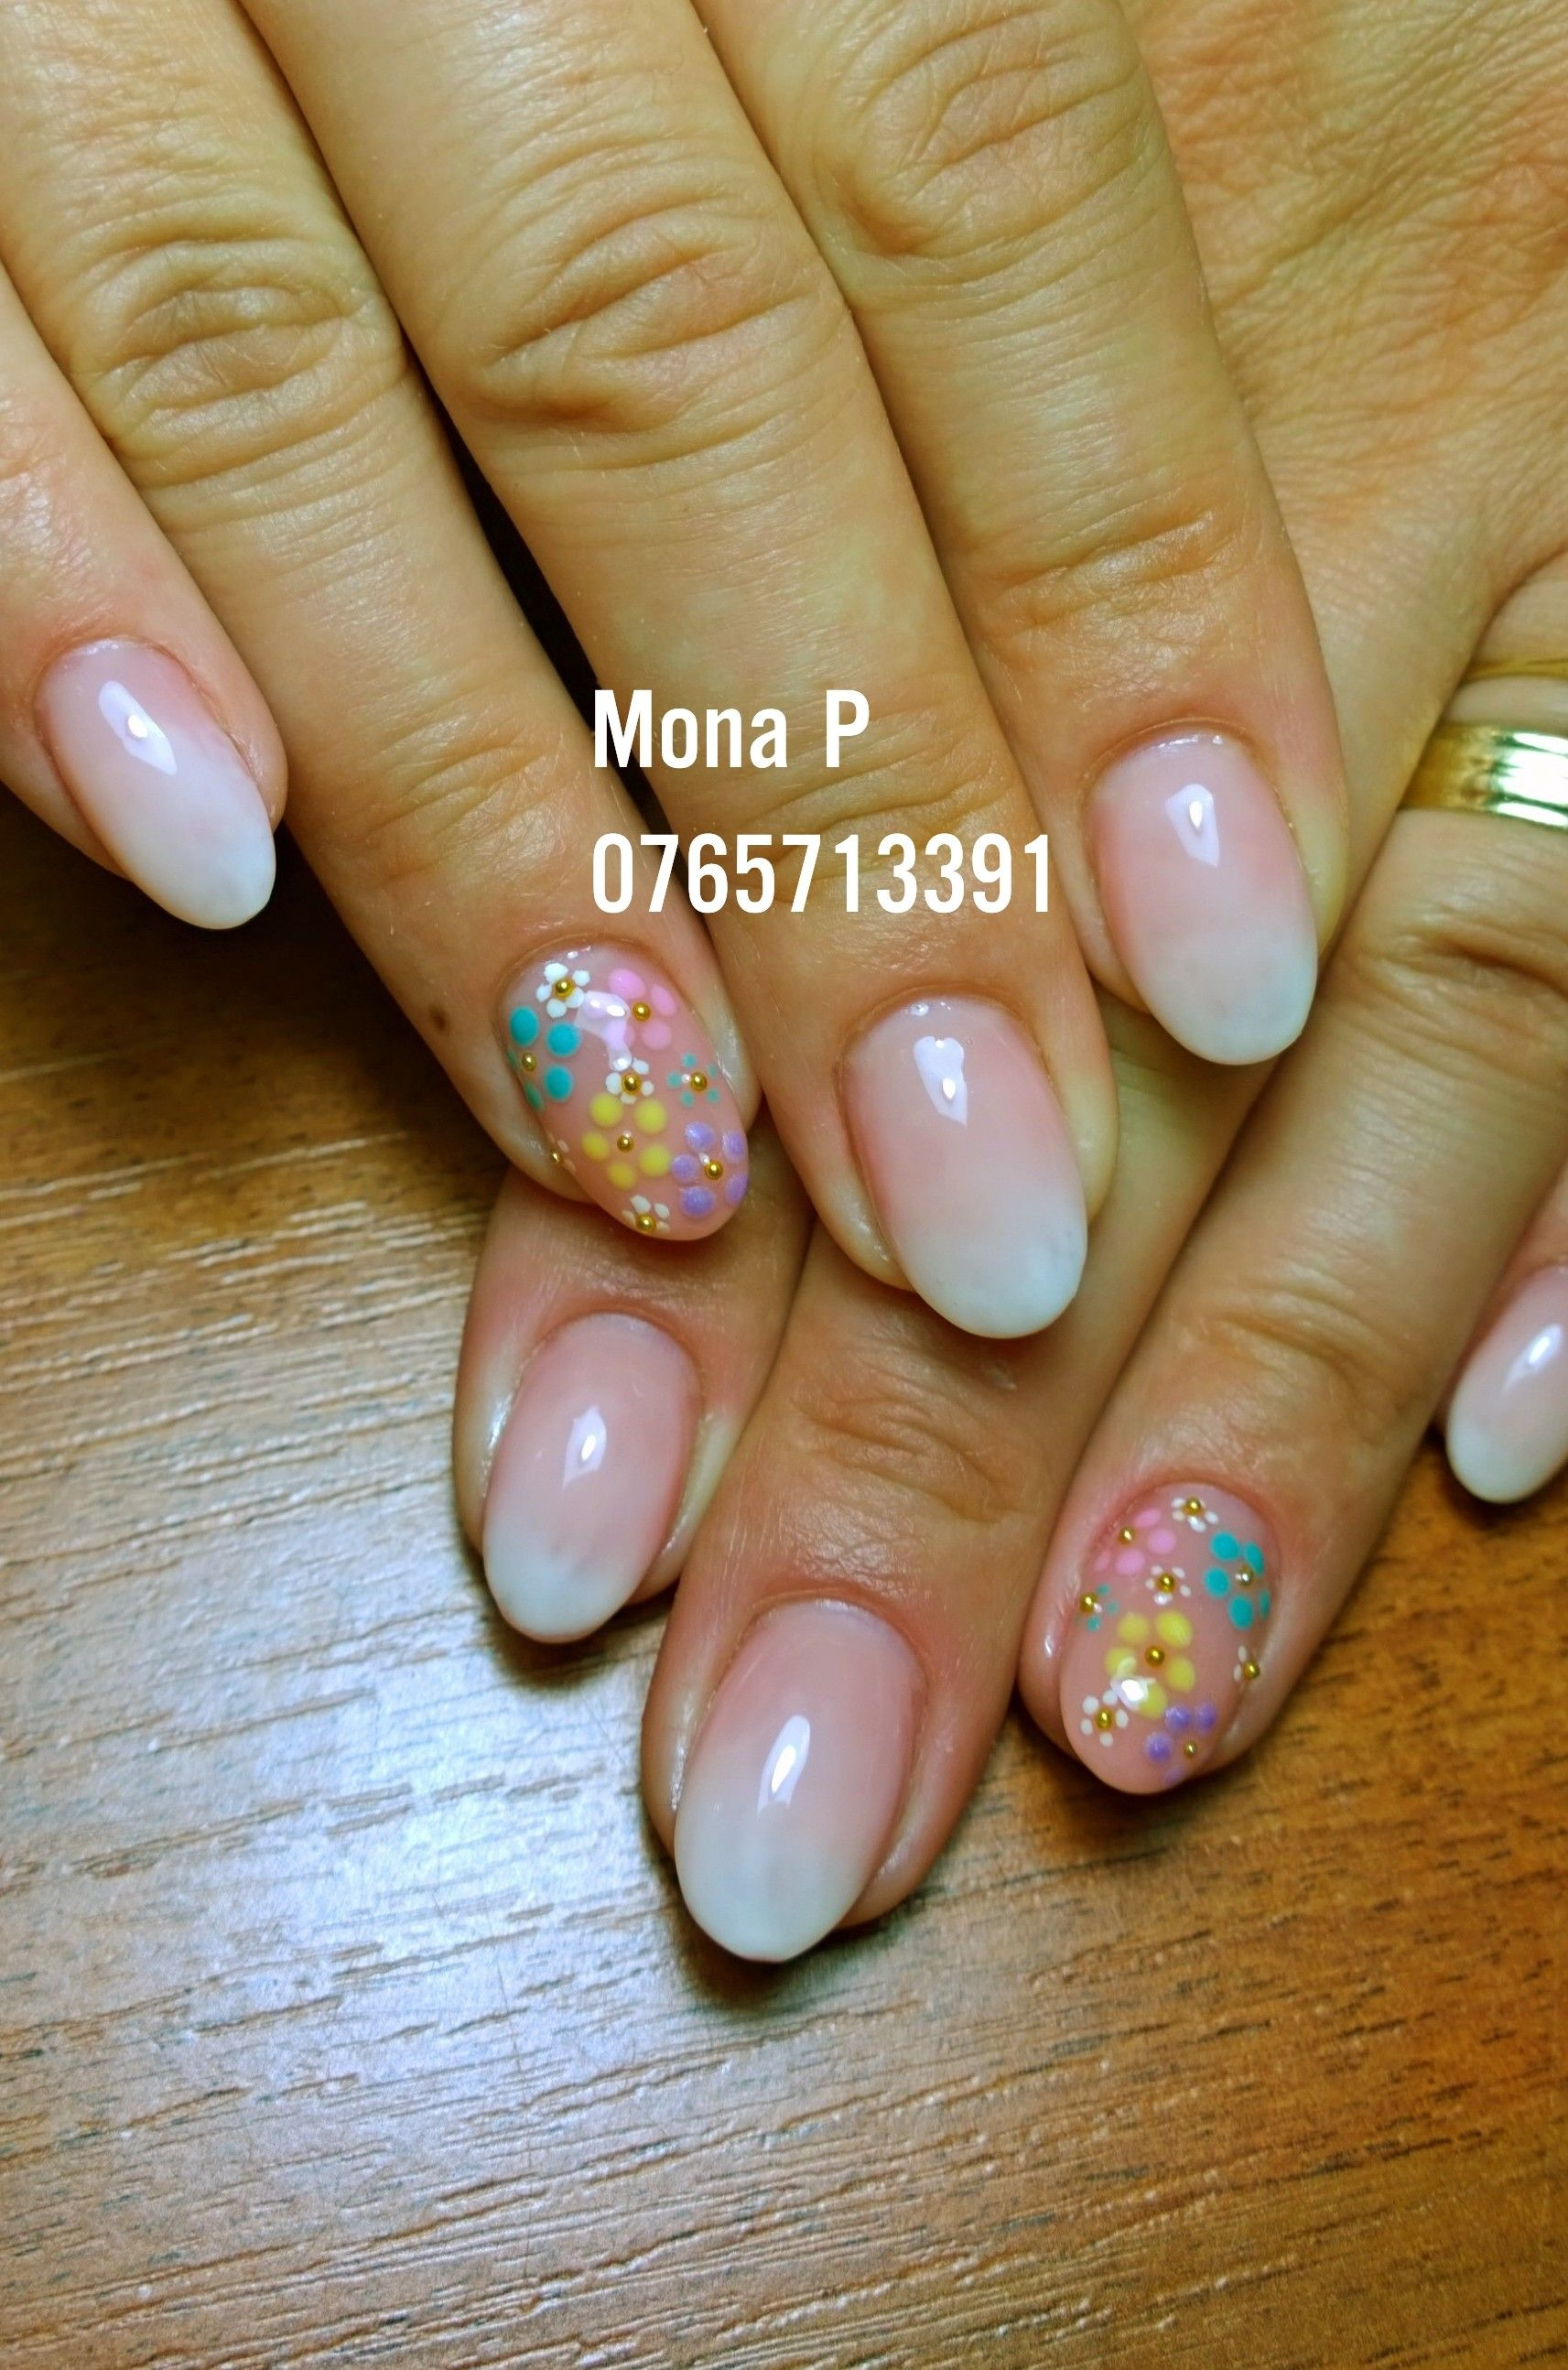 About baby boomer nail art tutorial by nded on pinterest nail art - Baby Boomer Flower Nail Art Nail Art By Mona P Pinterest Nail Art Baby